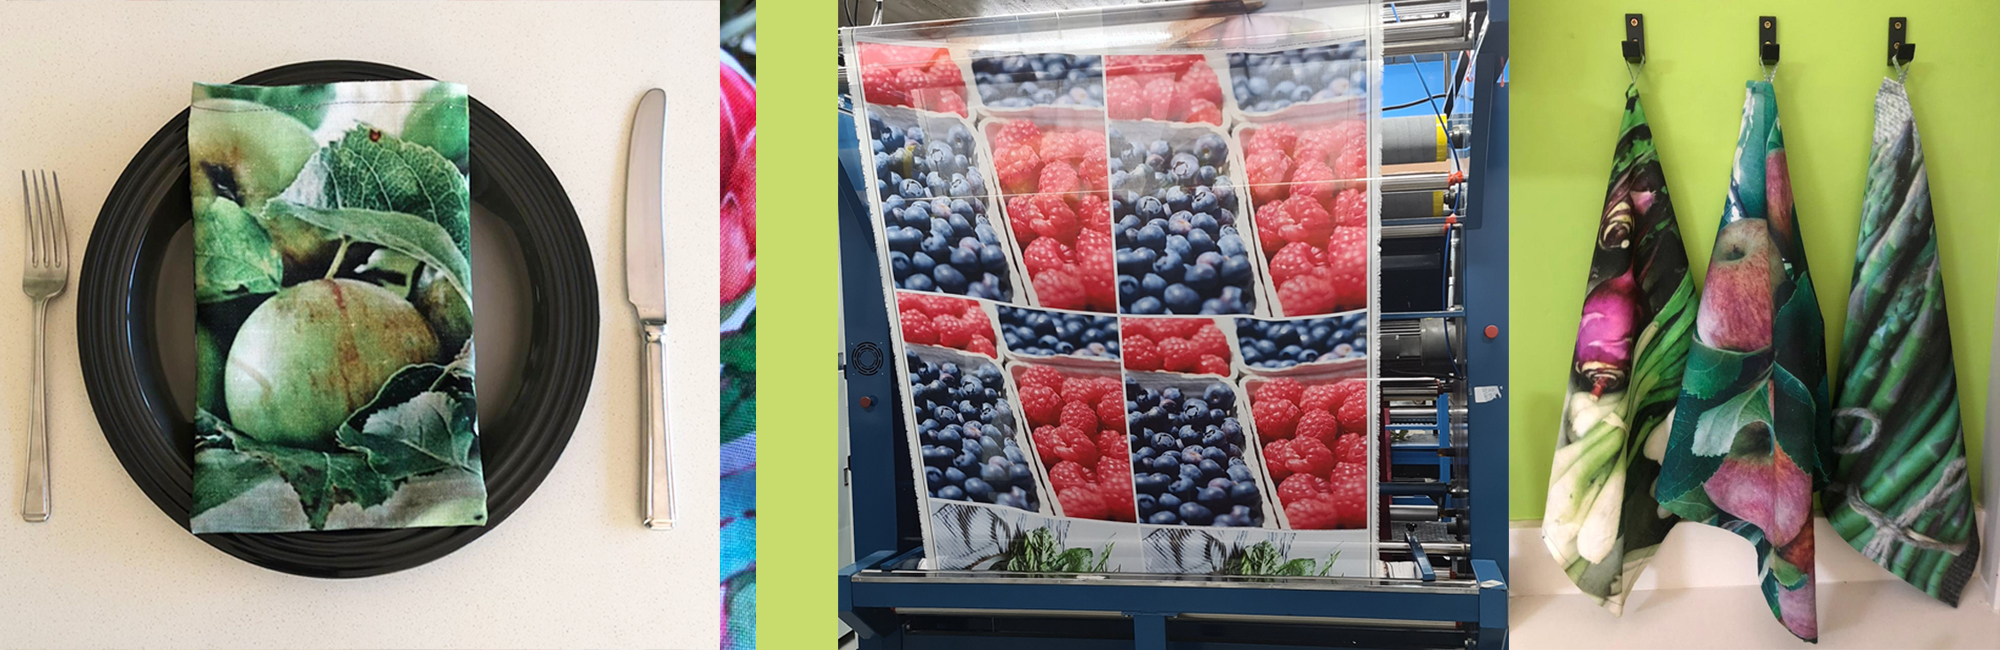 Digital textile printing for home decor projects such as tea towels